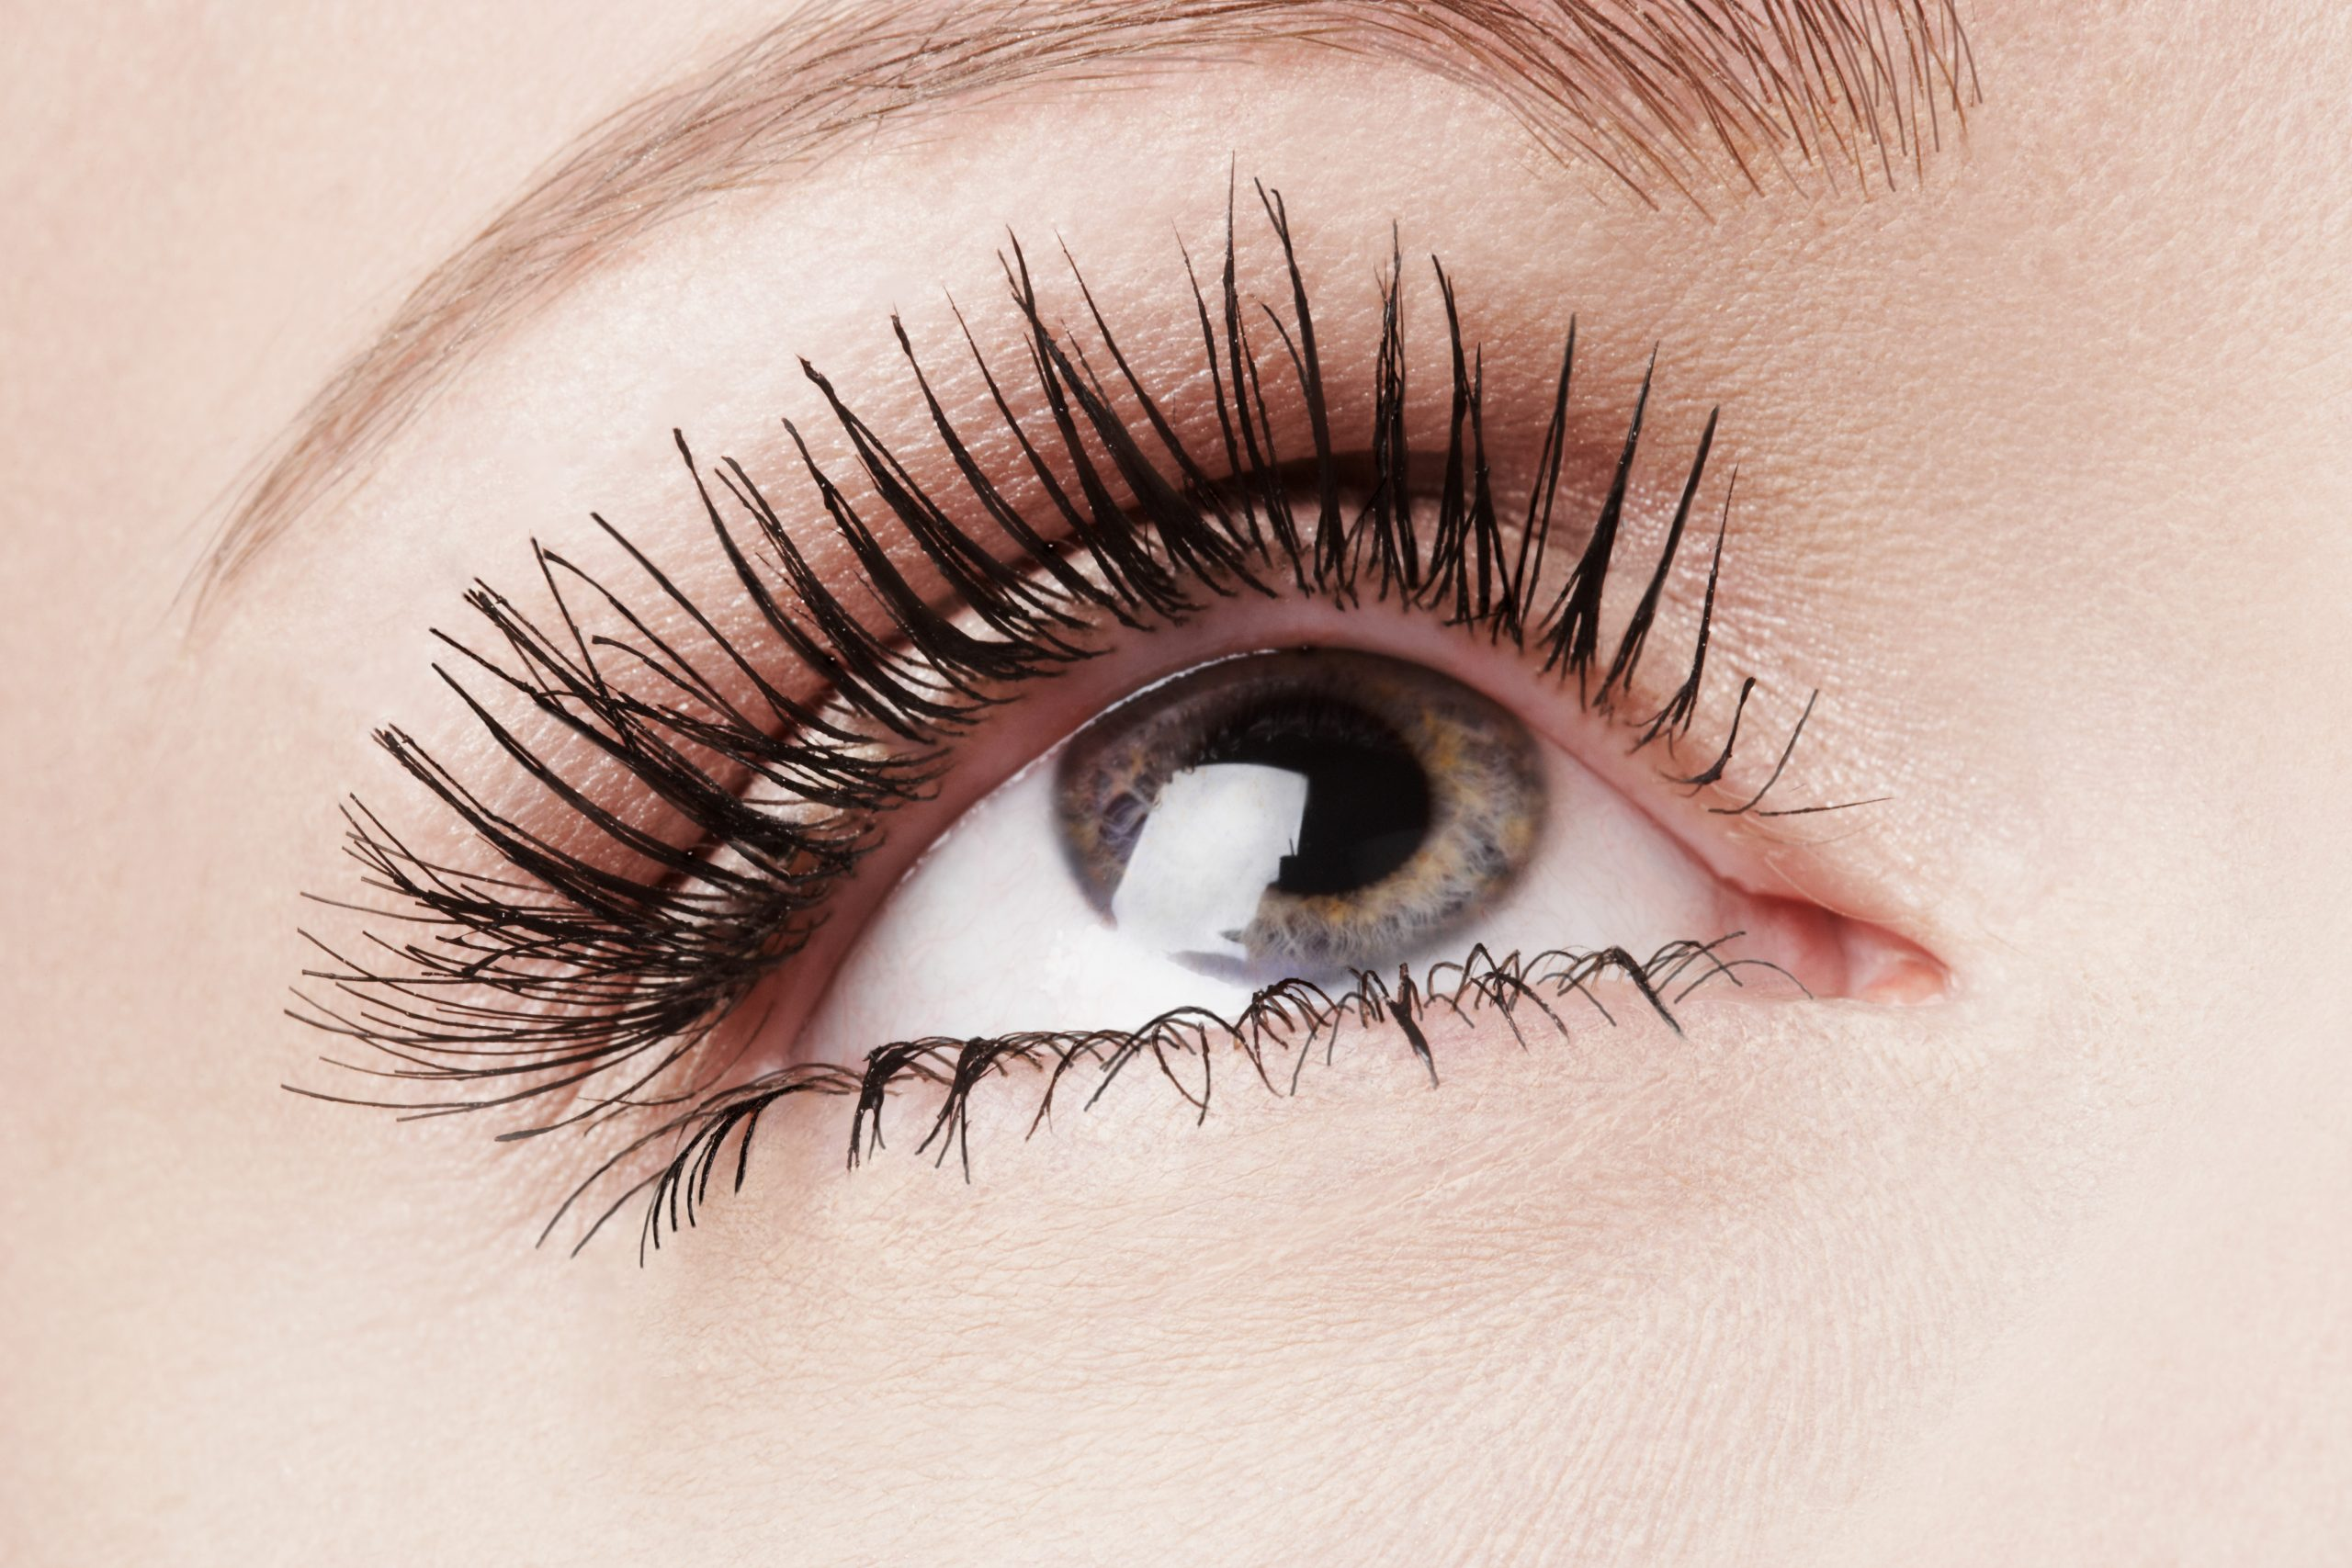 The NEW £9.99 Maybelline mascara that's better than a lash lift